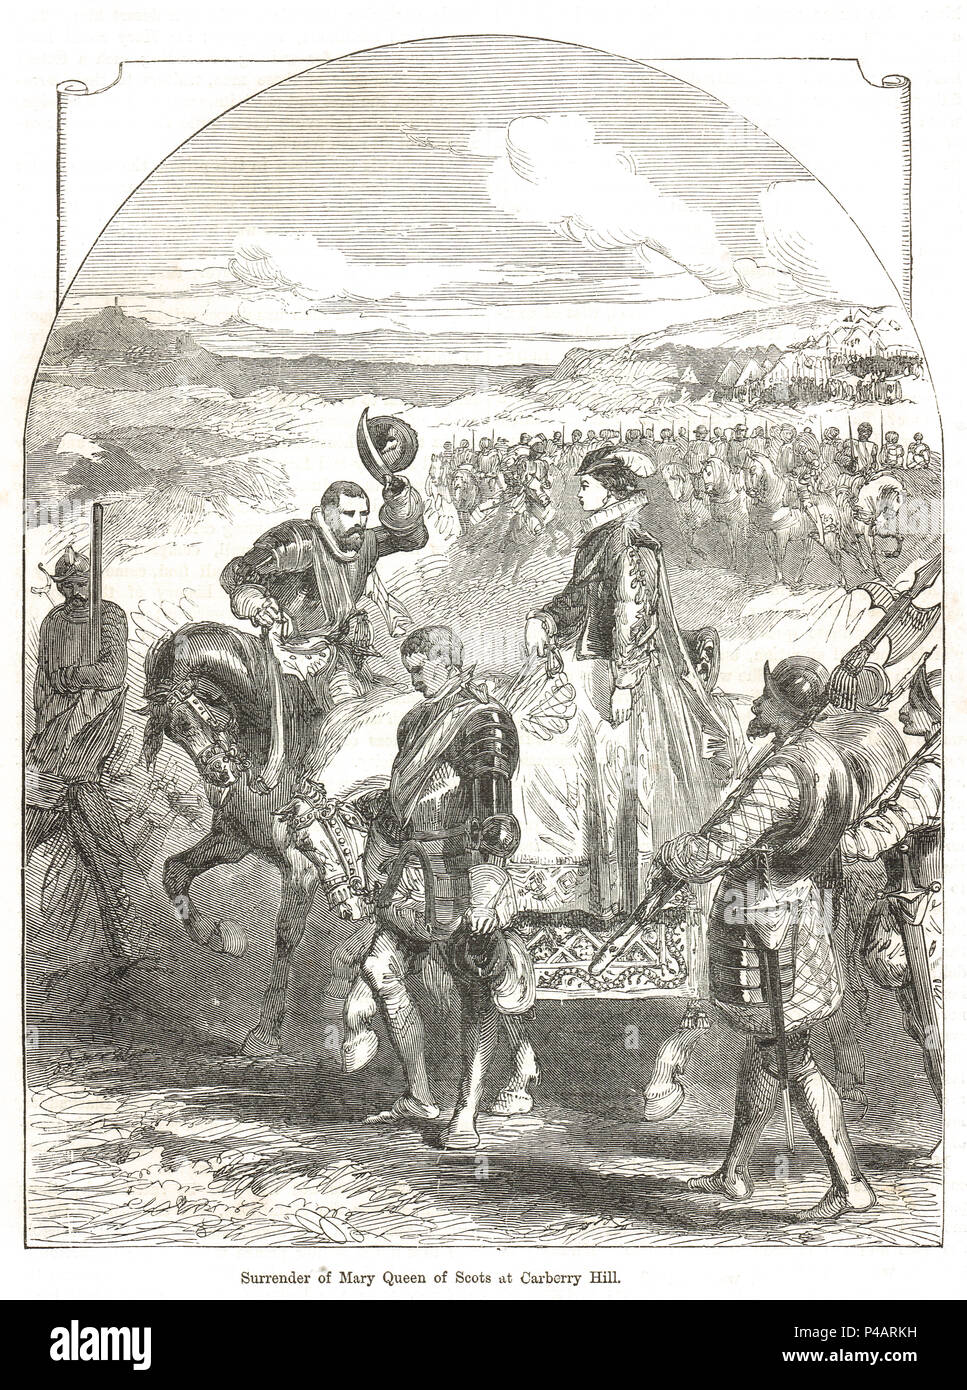 The surrender of Mary Queen of Scots, Battle of Carberry Hill, 15 June 1567 - Stock Image